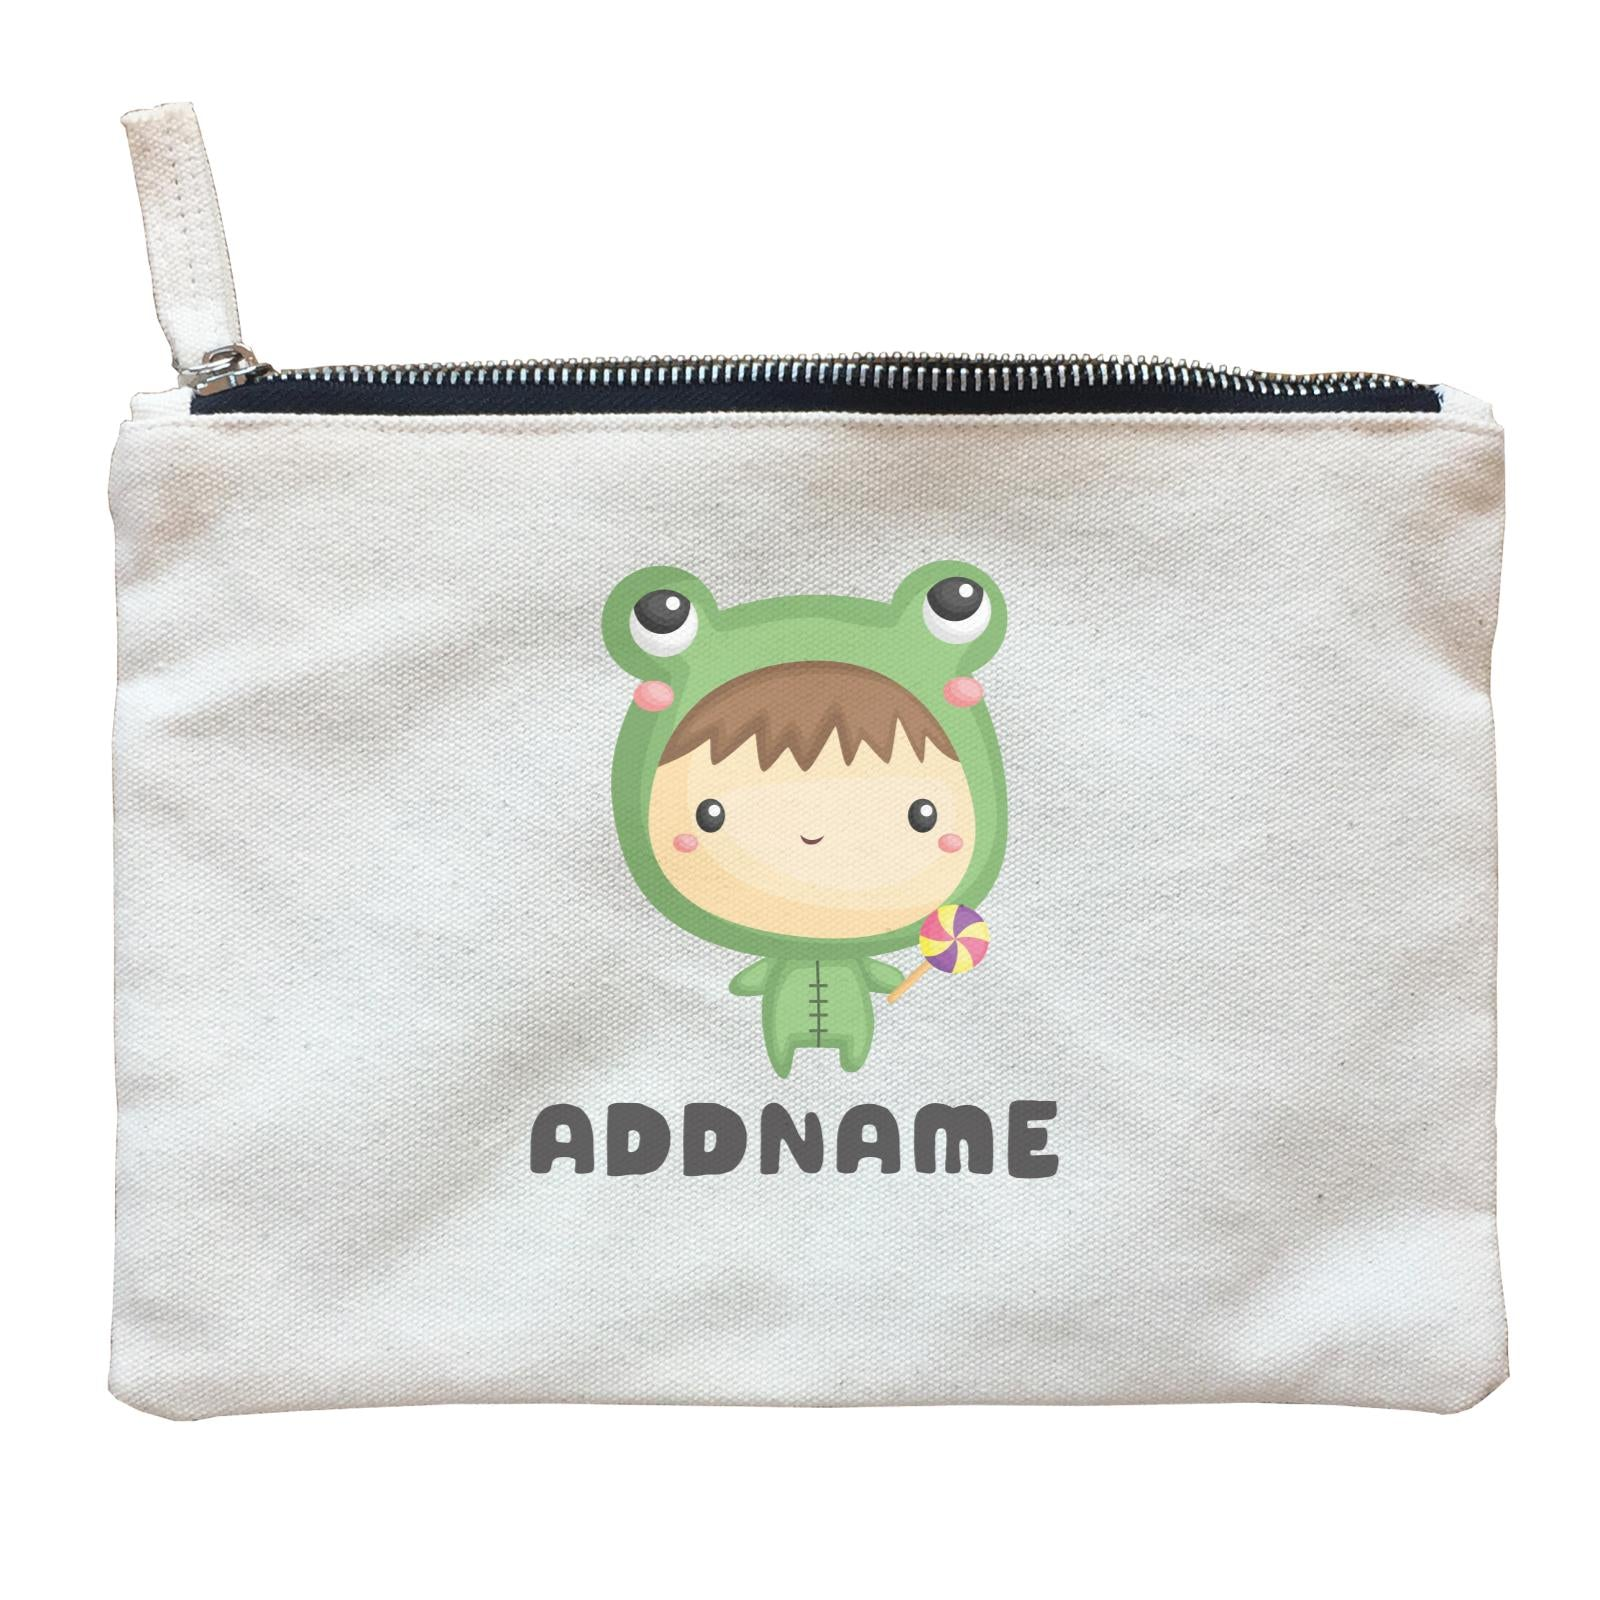 Birthday Frog Baby Boy Wearing Frog Suit Holding Lolipop Addname Zipper Pouch